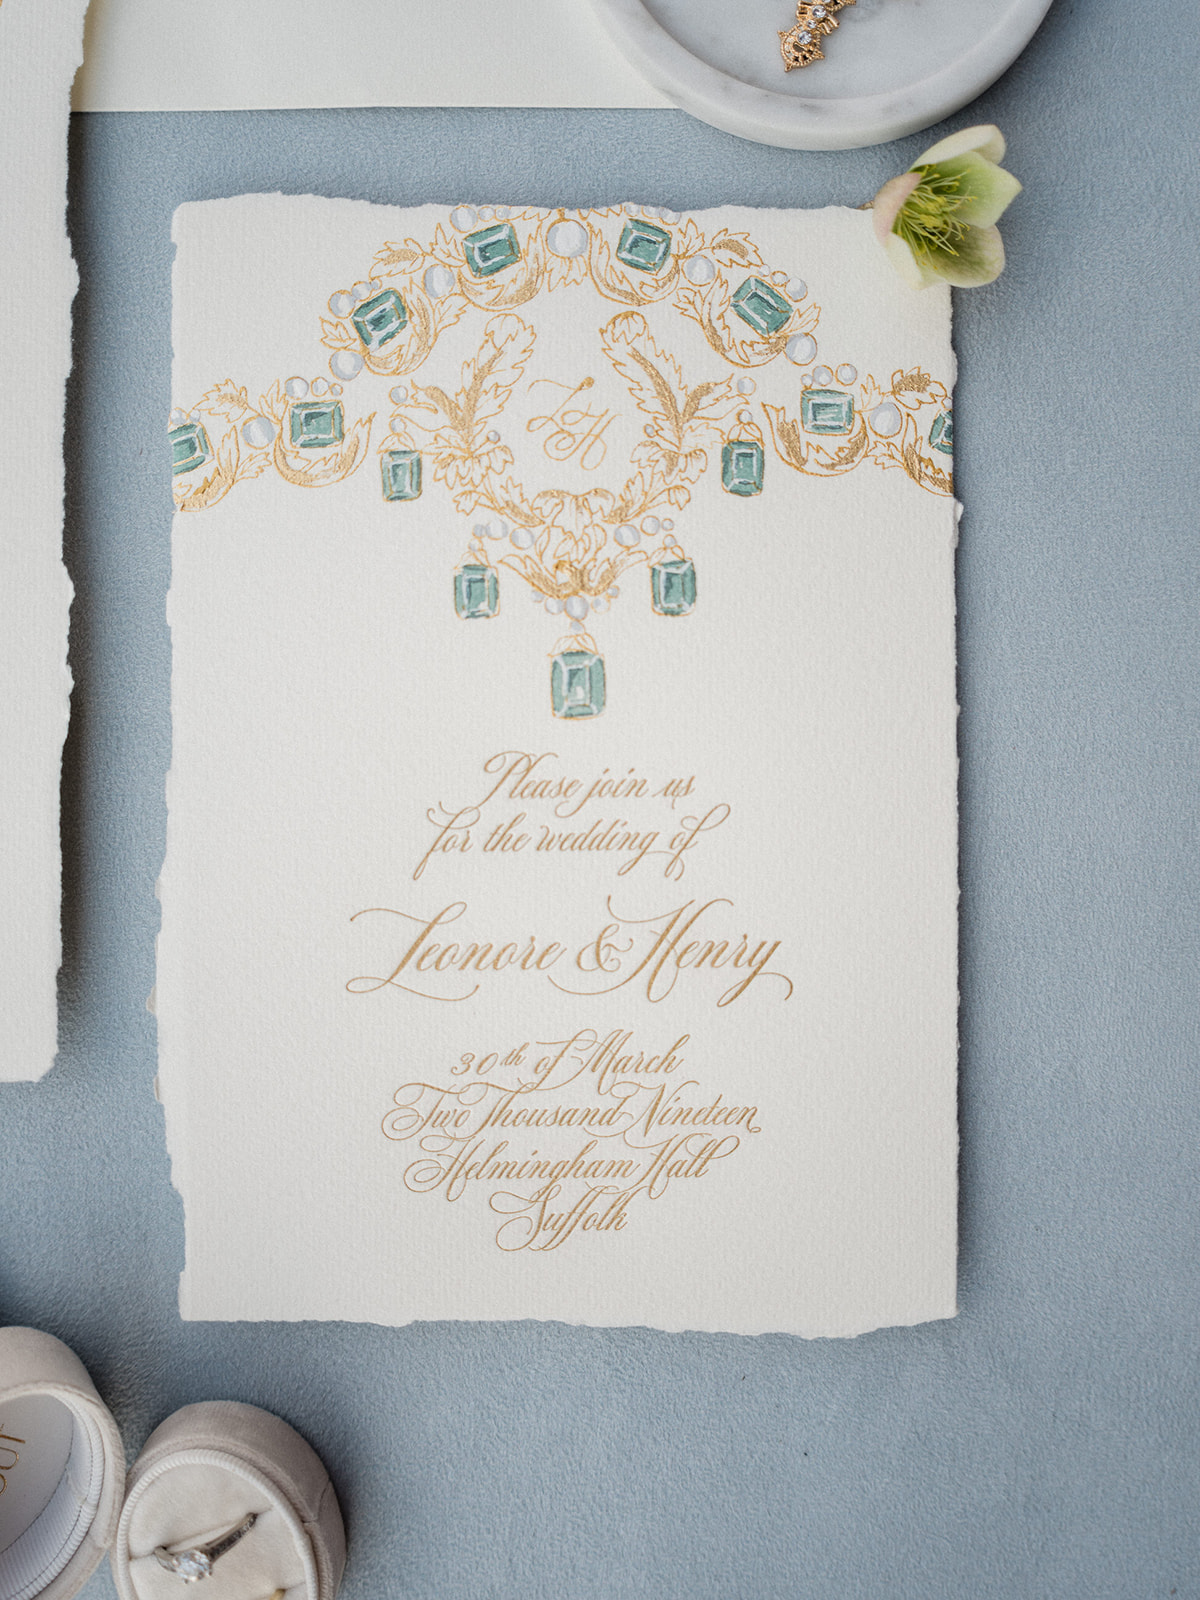 Royal wedding stationery designed by Carissimo Letterpress